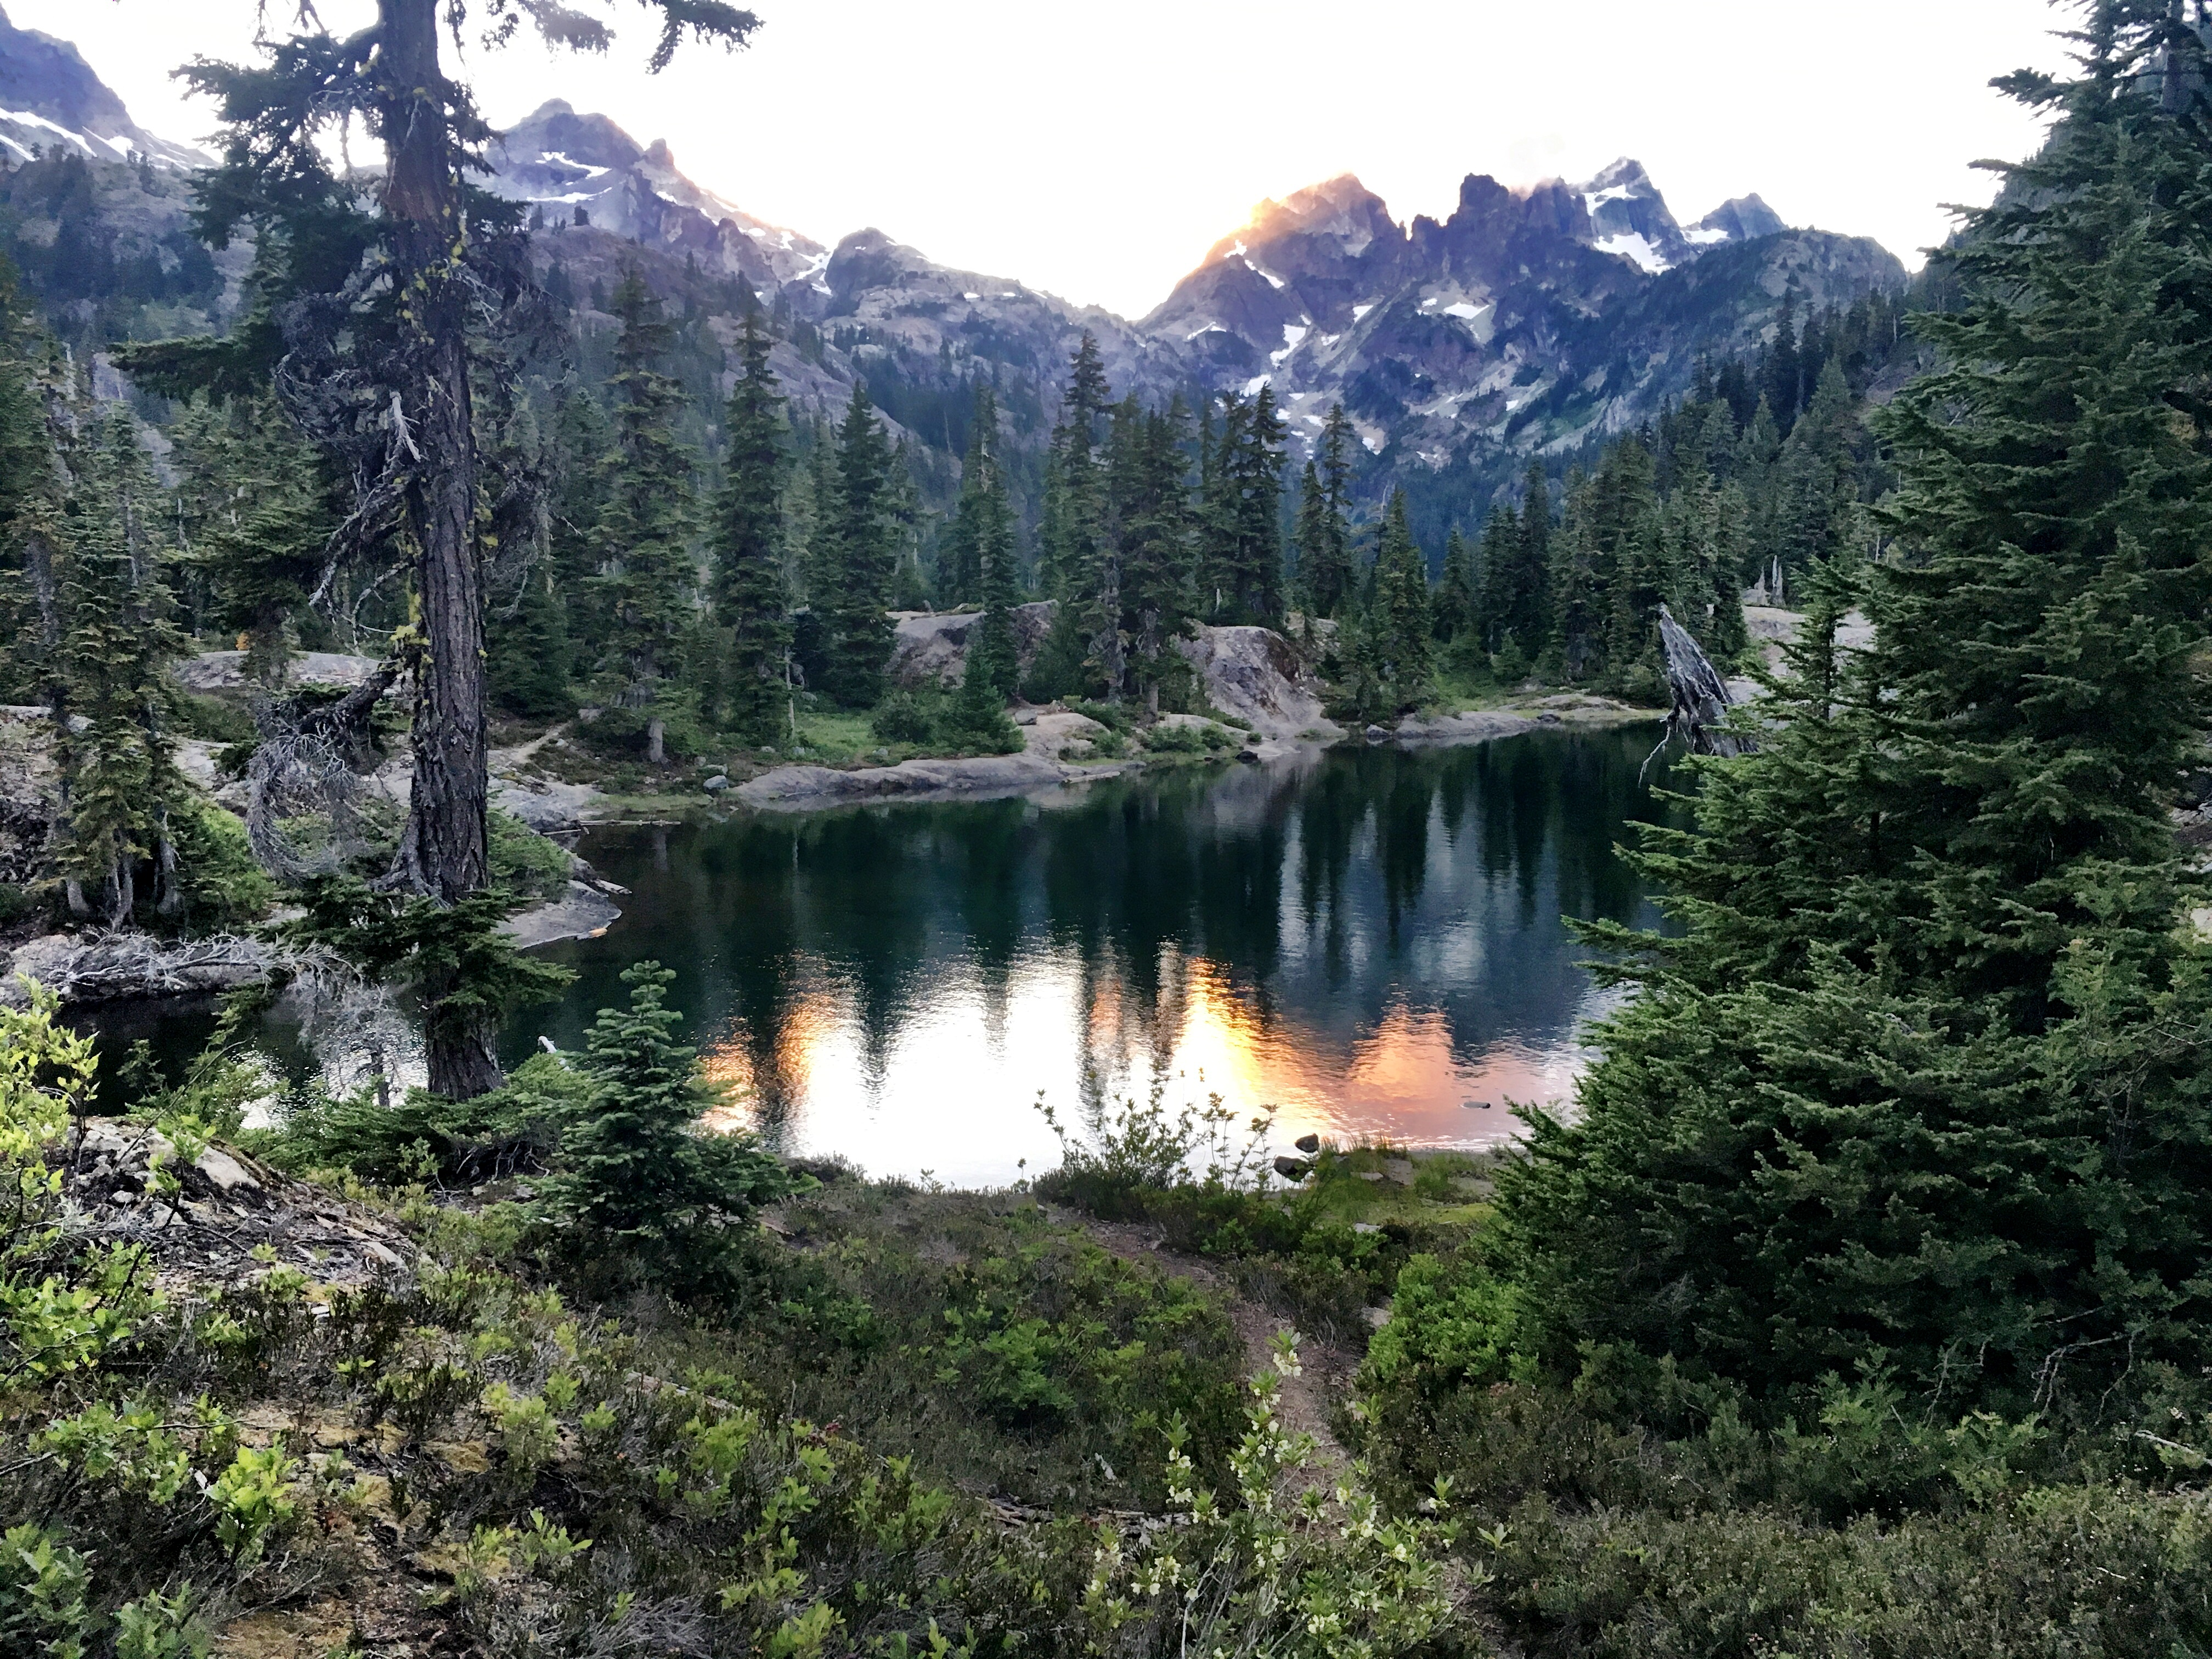 Spectacle Lake Sunset on Stevens Pass to Snoqualmie Pass adventure